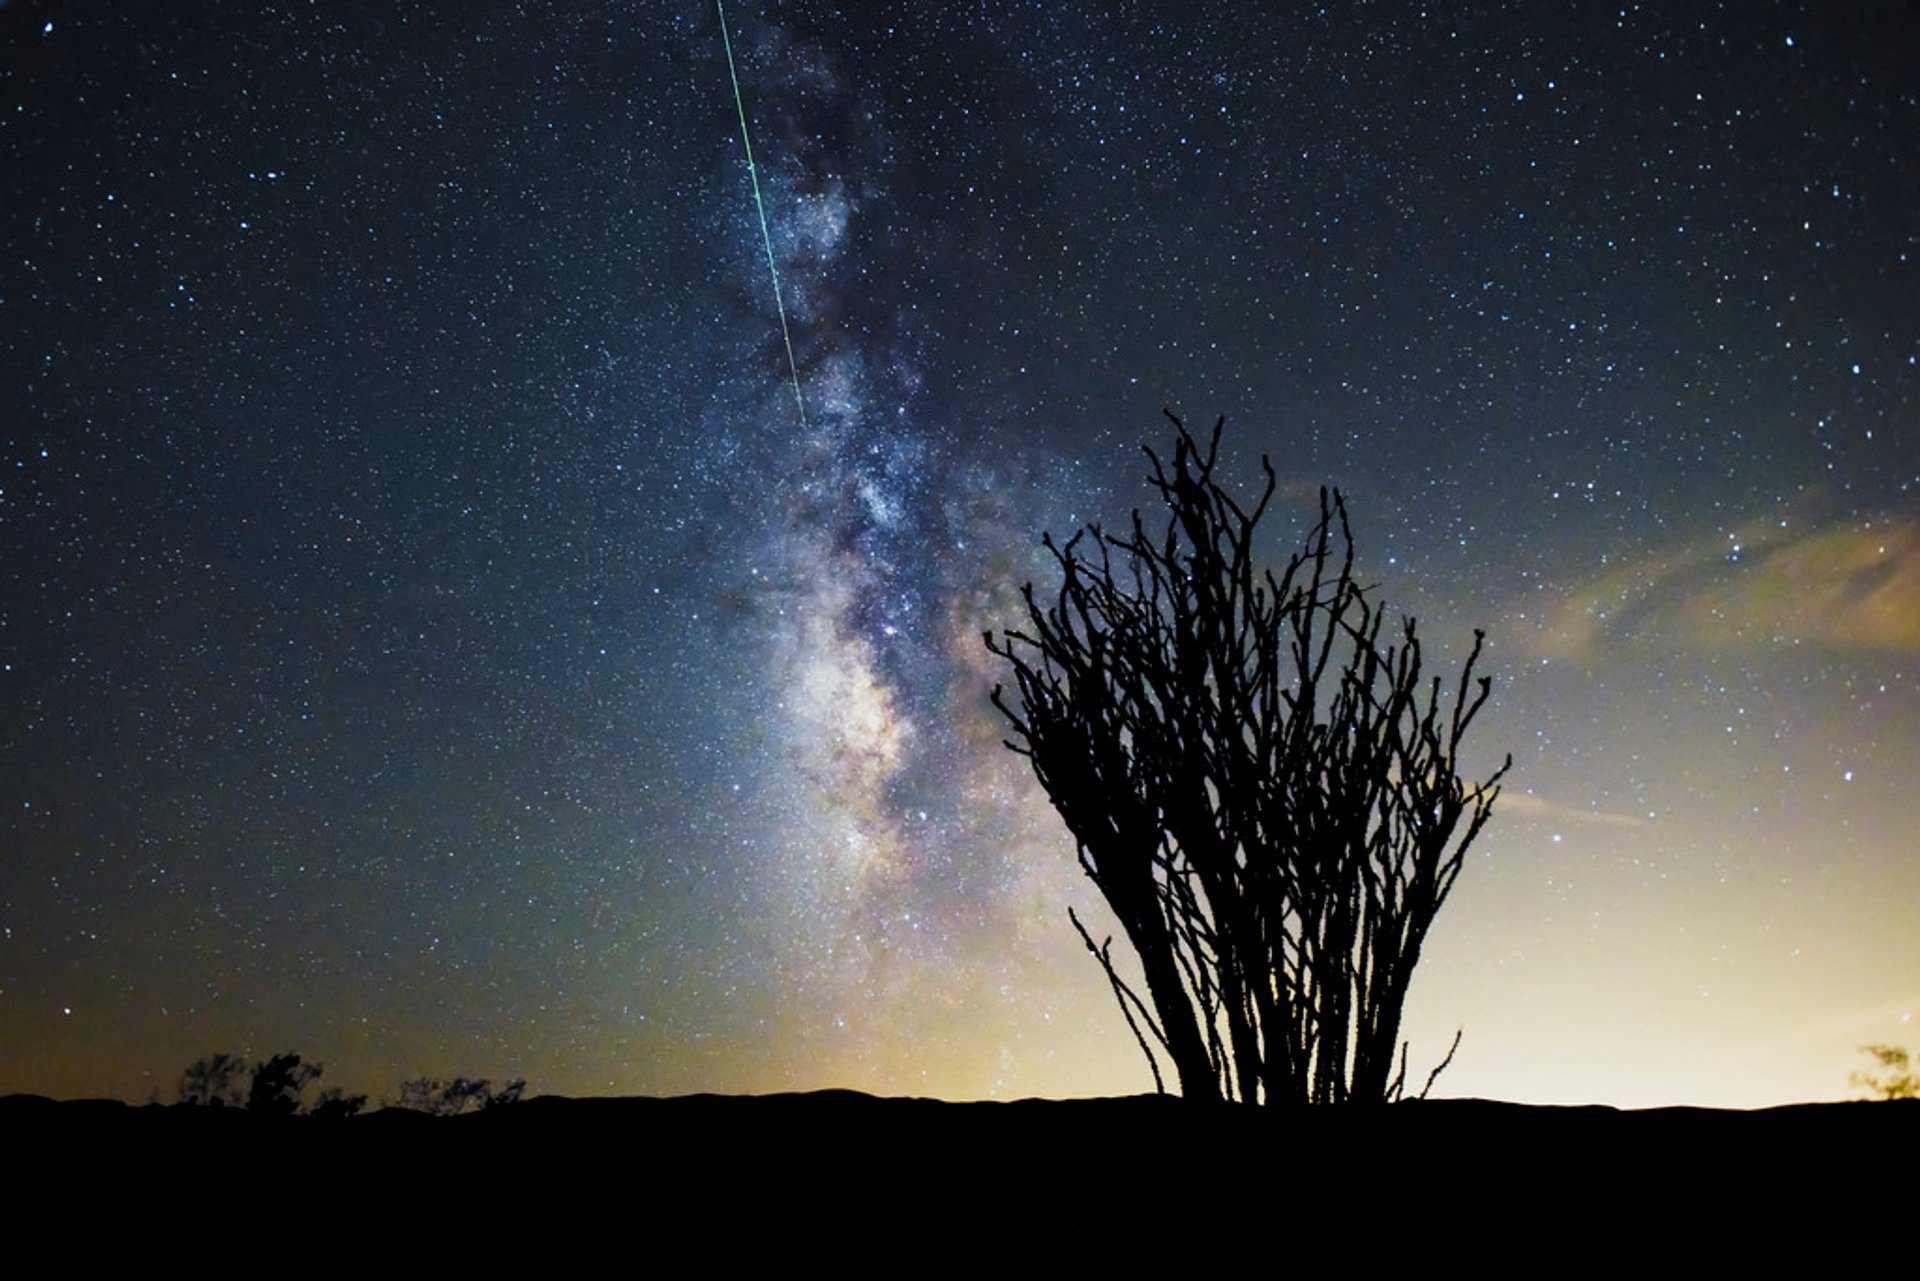 Perseid Meteor Shower in California 2020 - Best Time